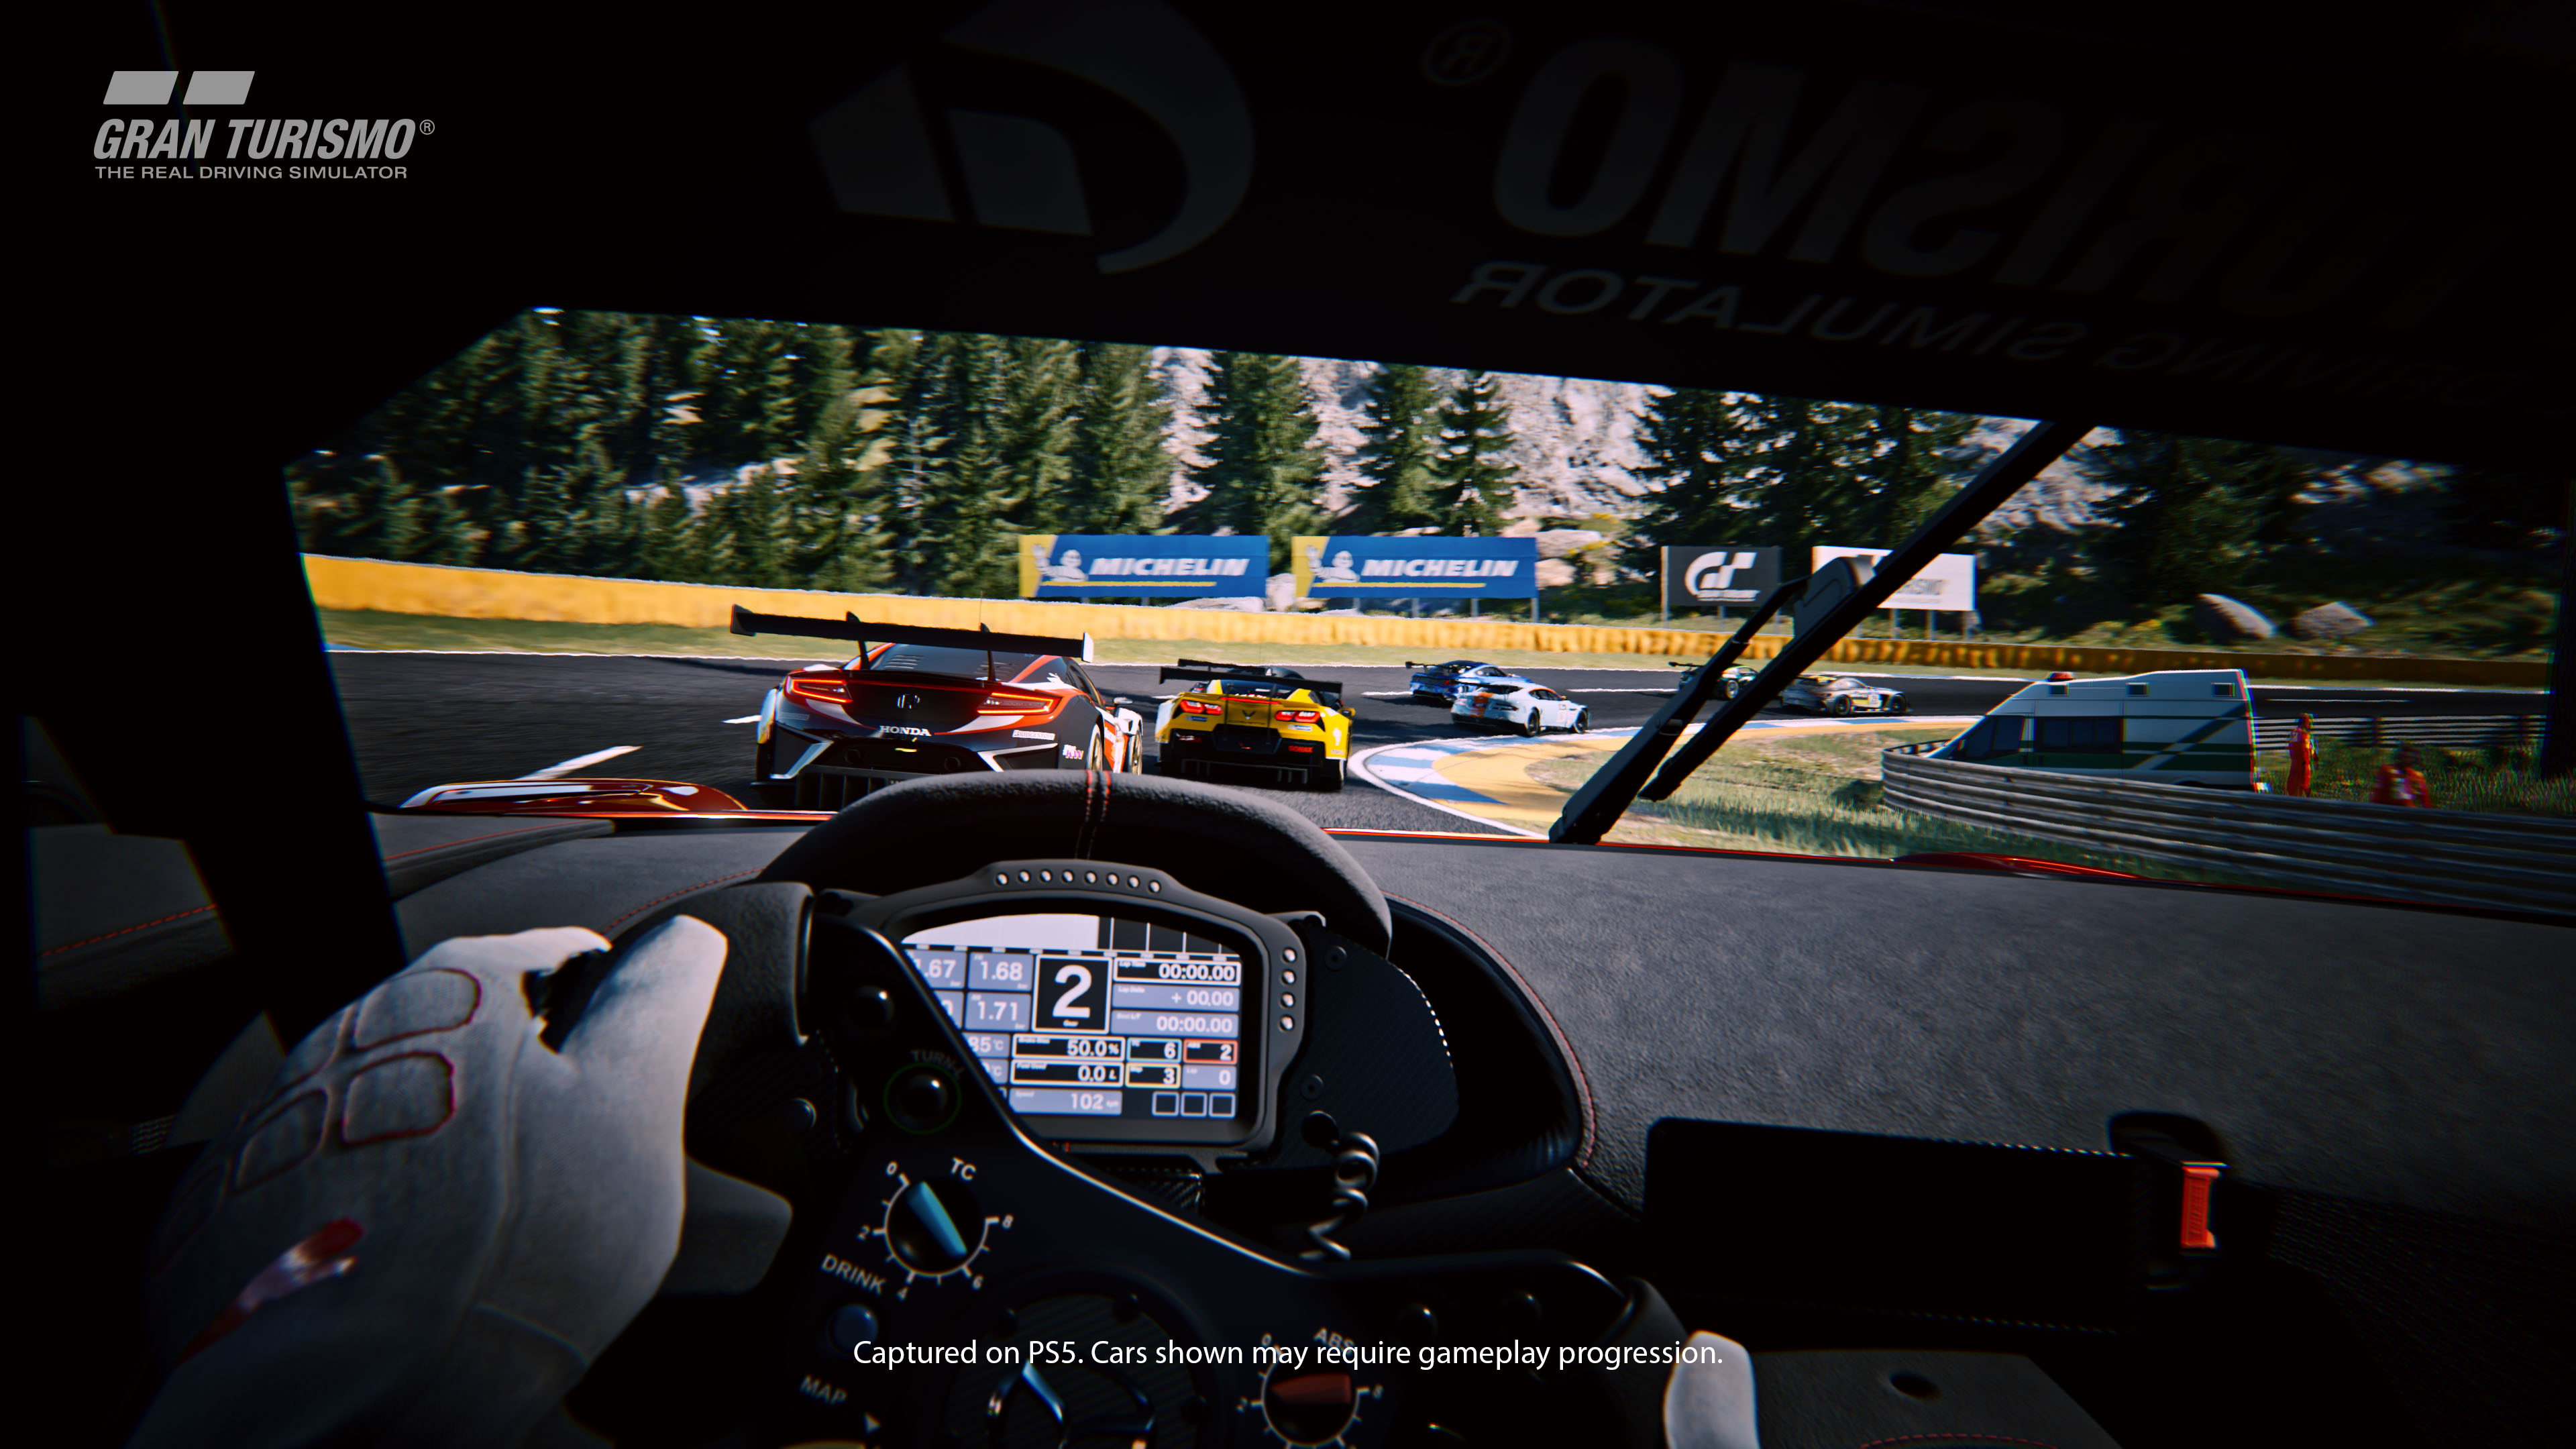 An in-dash shot of a race from Gran Turismo 7